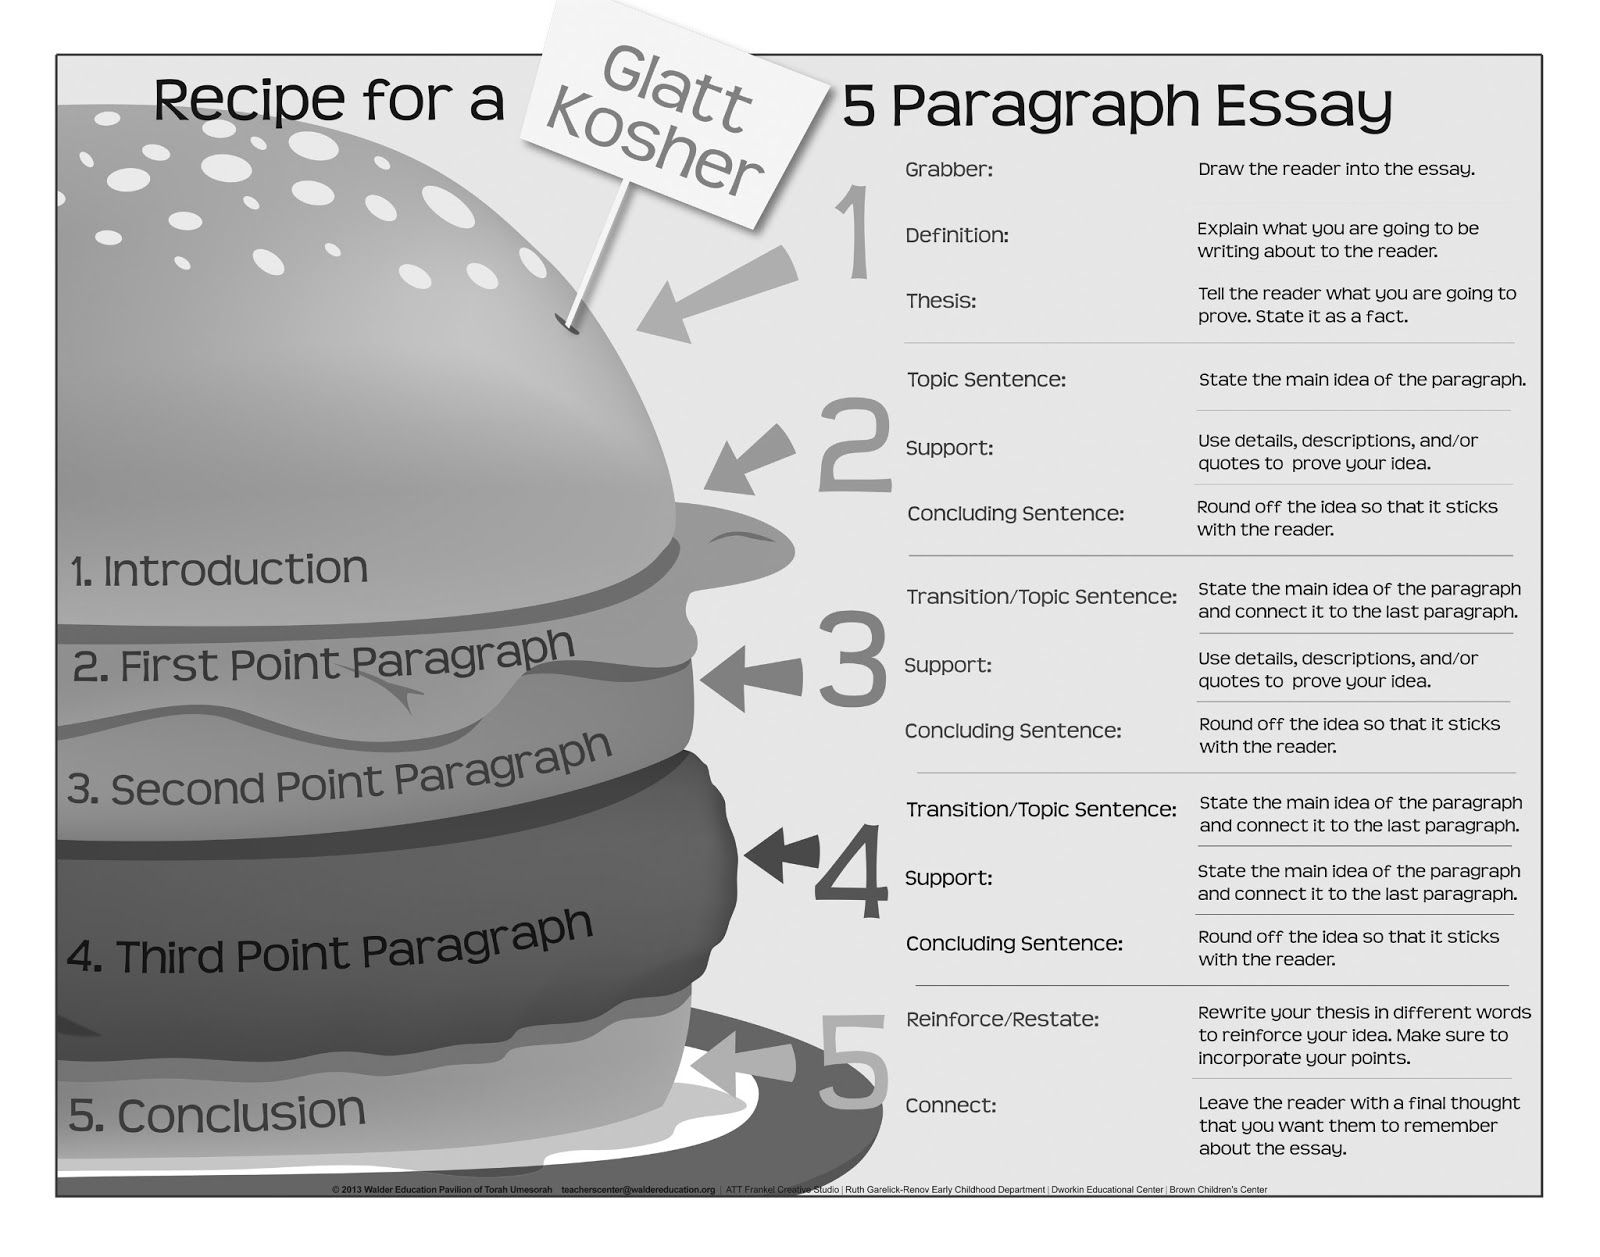 5 paragraph essay poster 5 paragraph essay posterpng in the they are expected to know how to write a multiparagraph fiction story as well as a typical five paragraph essay with a.